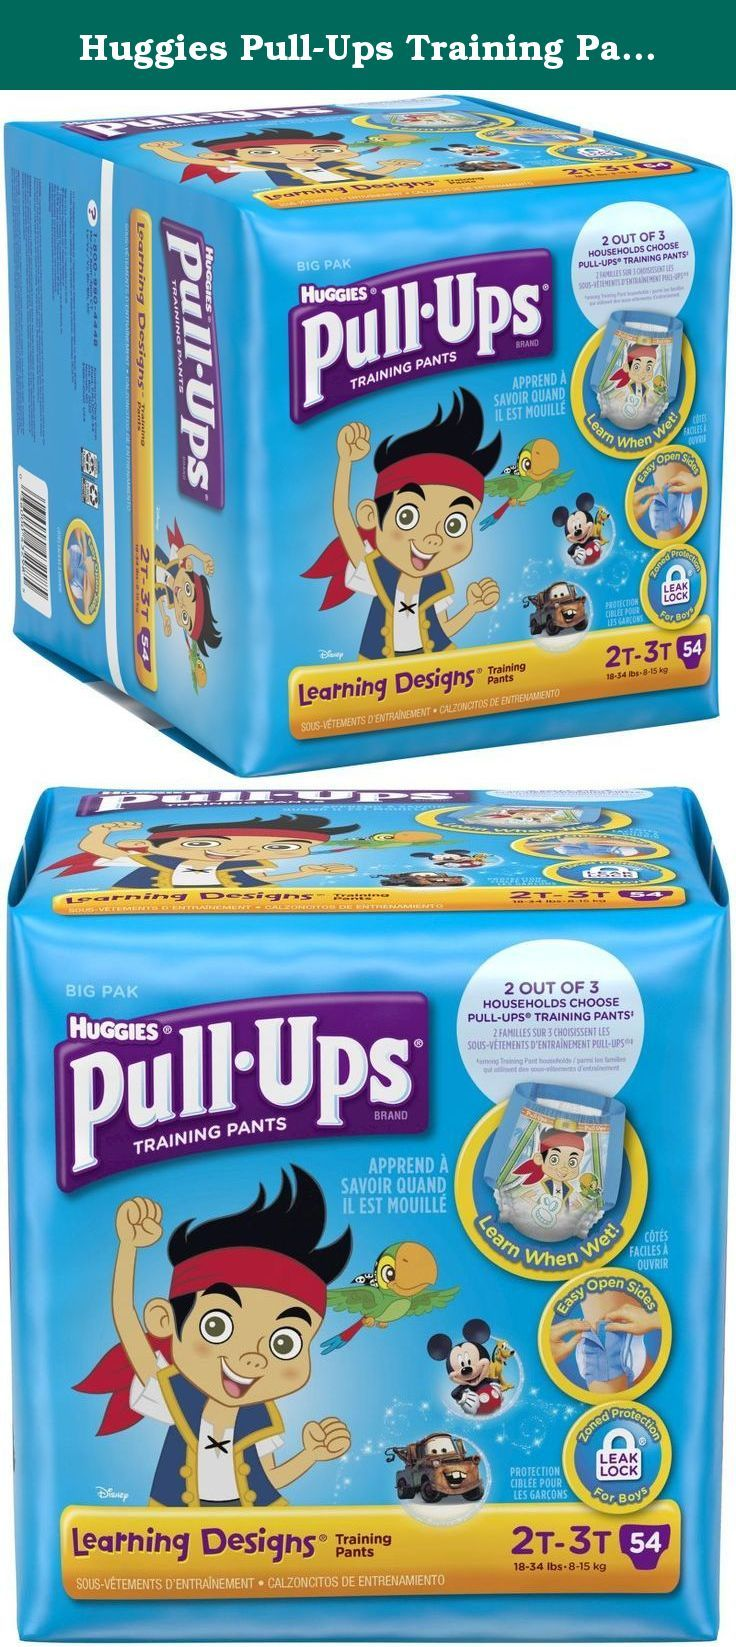 Huggies Pull-Ups Training Pants Learning Designs - Boys - 2T-3T - 54 ct. 2T-3T Pull-Ups® Training Pants with Learning Designs® for Boys feature unique designs that teach front and back and fade when wet to help your toddler learn. Pull-Ups® potty training pants with stretchy sides allow kids to pull them on and off, and Disney characters help make training pants seem like Big Kid underwear. Our easy-open sides make checking for potty breaks simple. Start potty training today! .